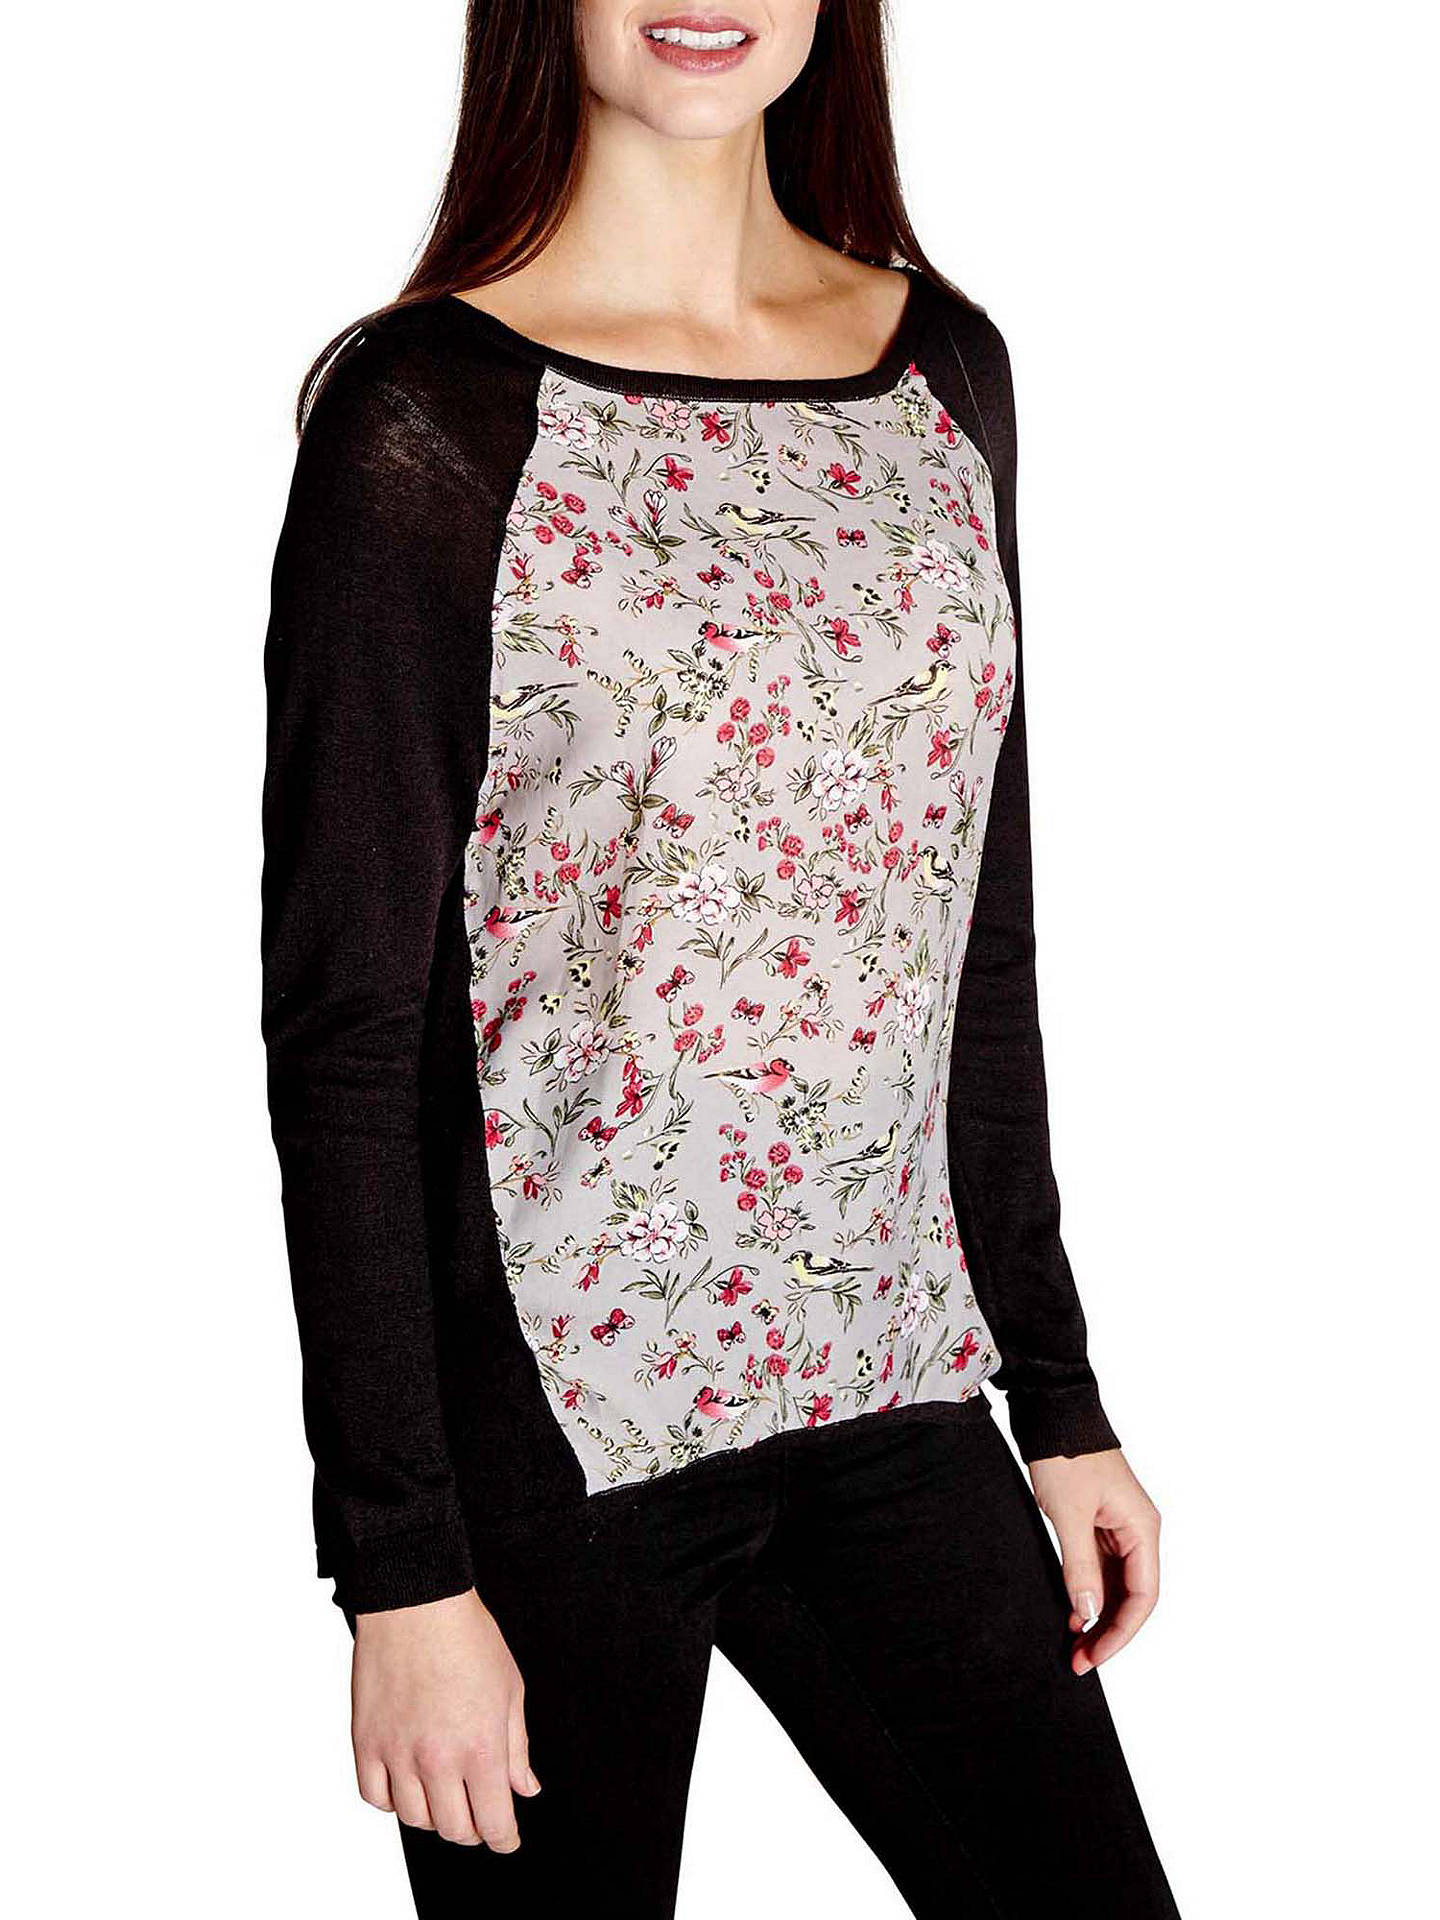 BuyYumi Floral Dipped Hem Jumper, Black, M Online at johnlewis.com